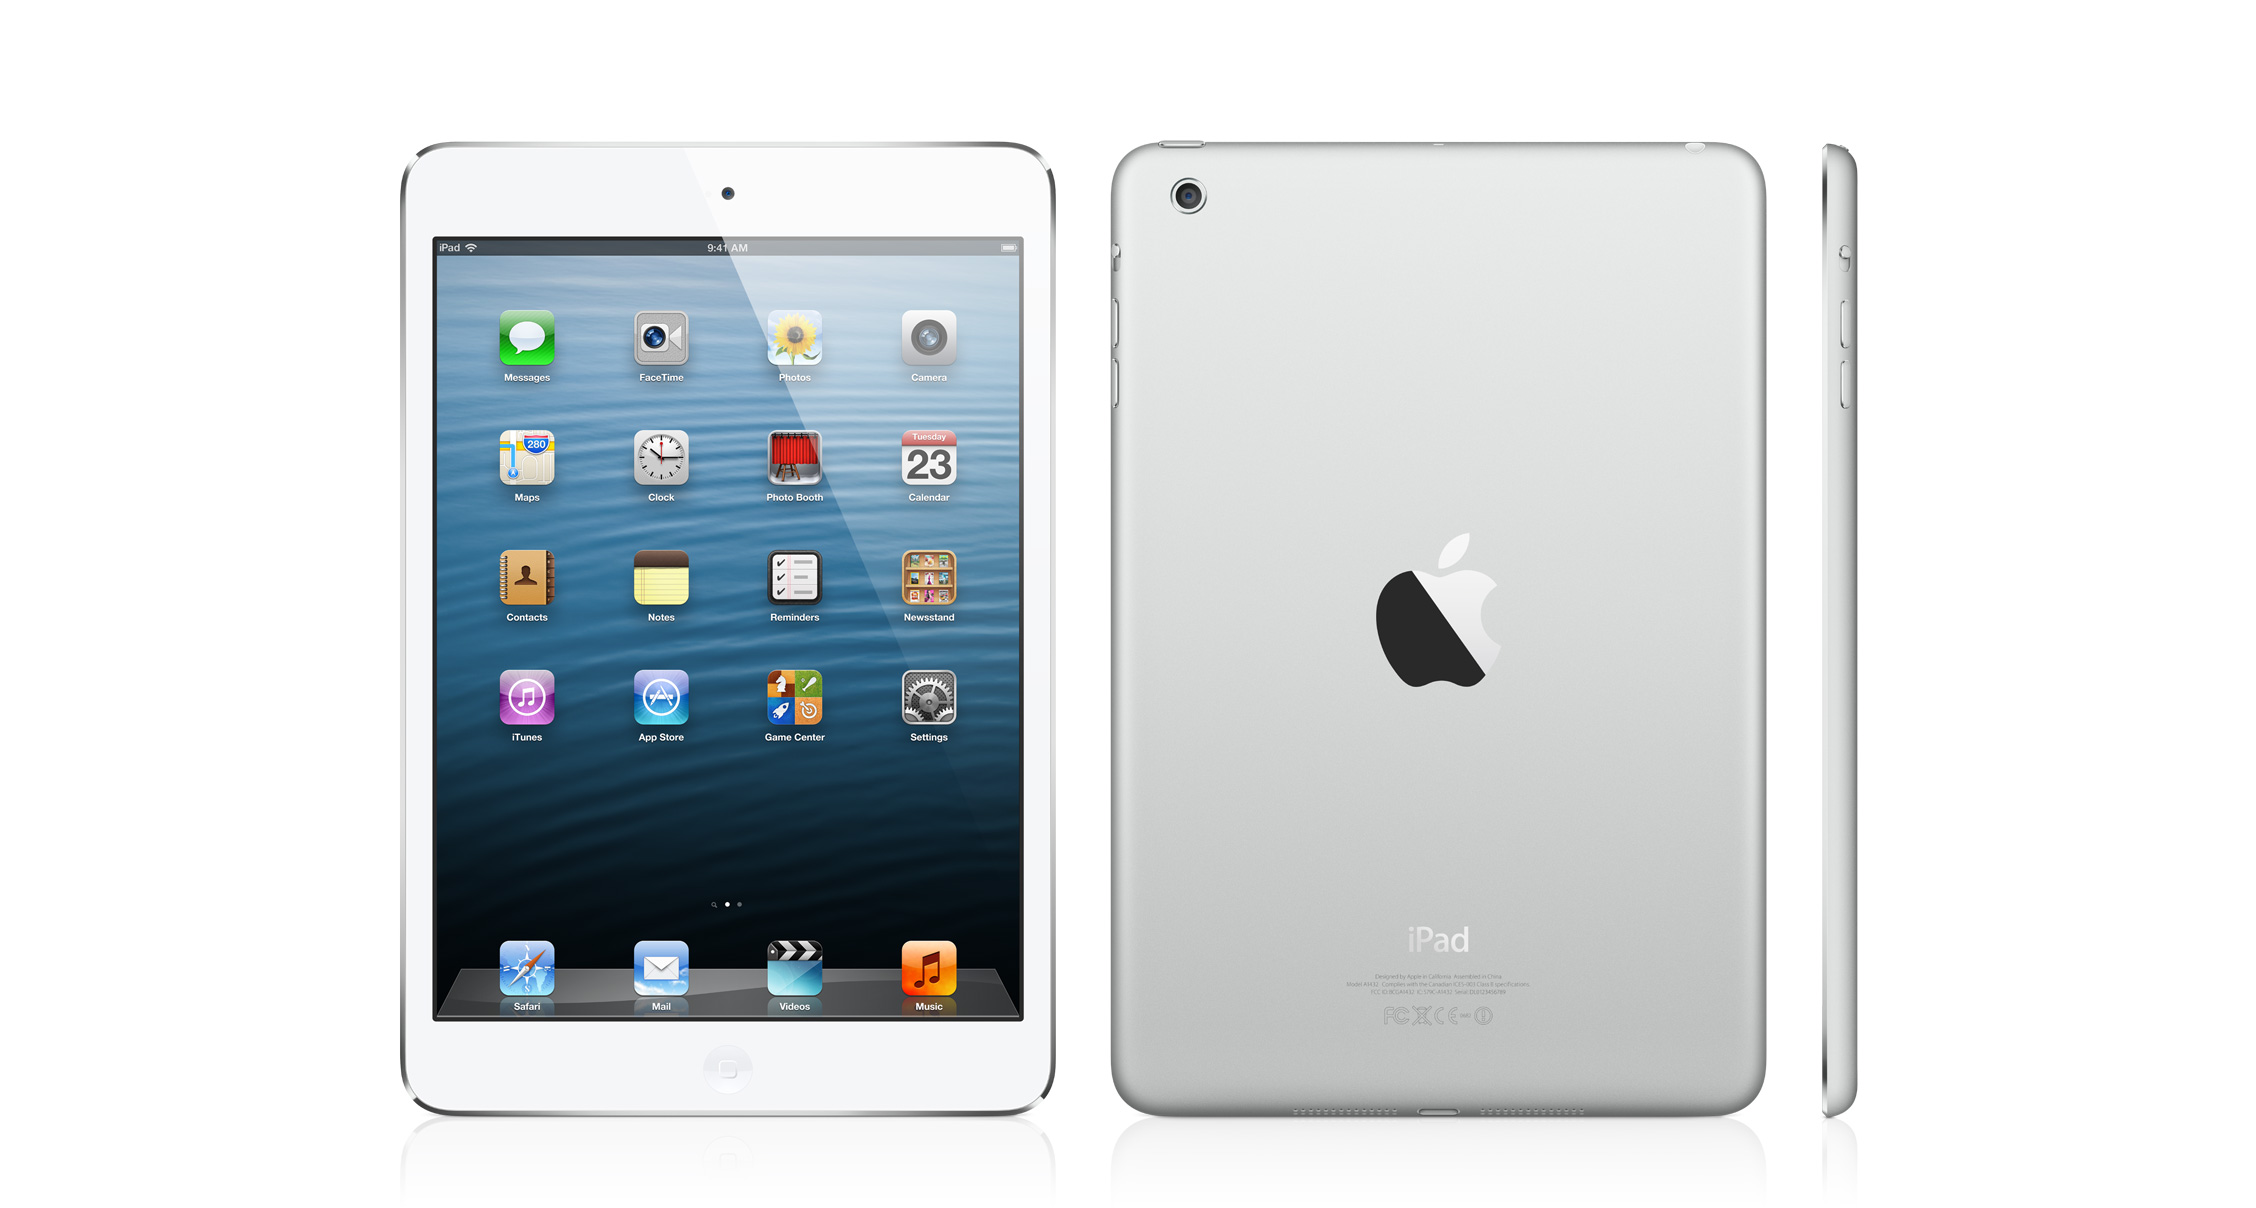 It's Official – iPad Mini, Updated Mac Mini, Redesigned iMac and New 13inch Macbook Pro | Scopecube